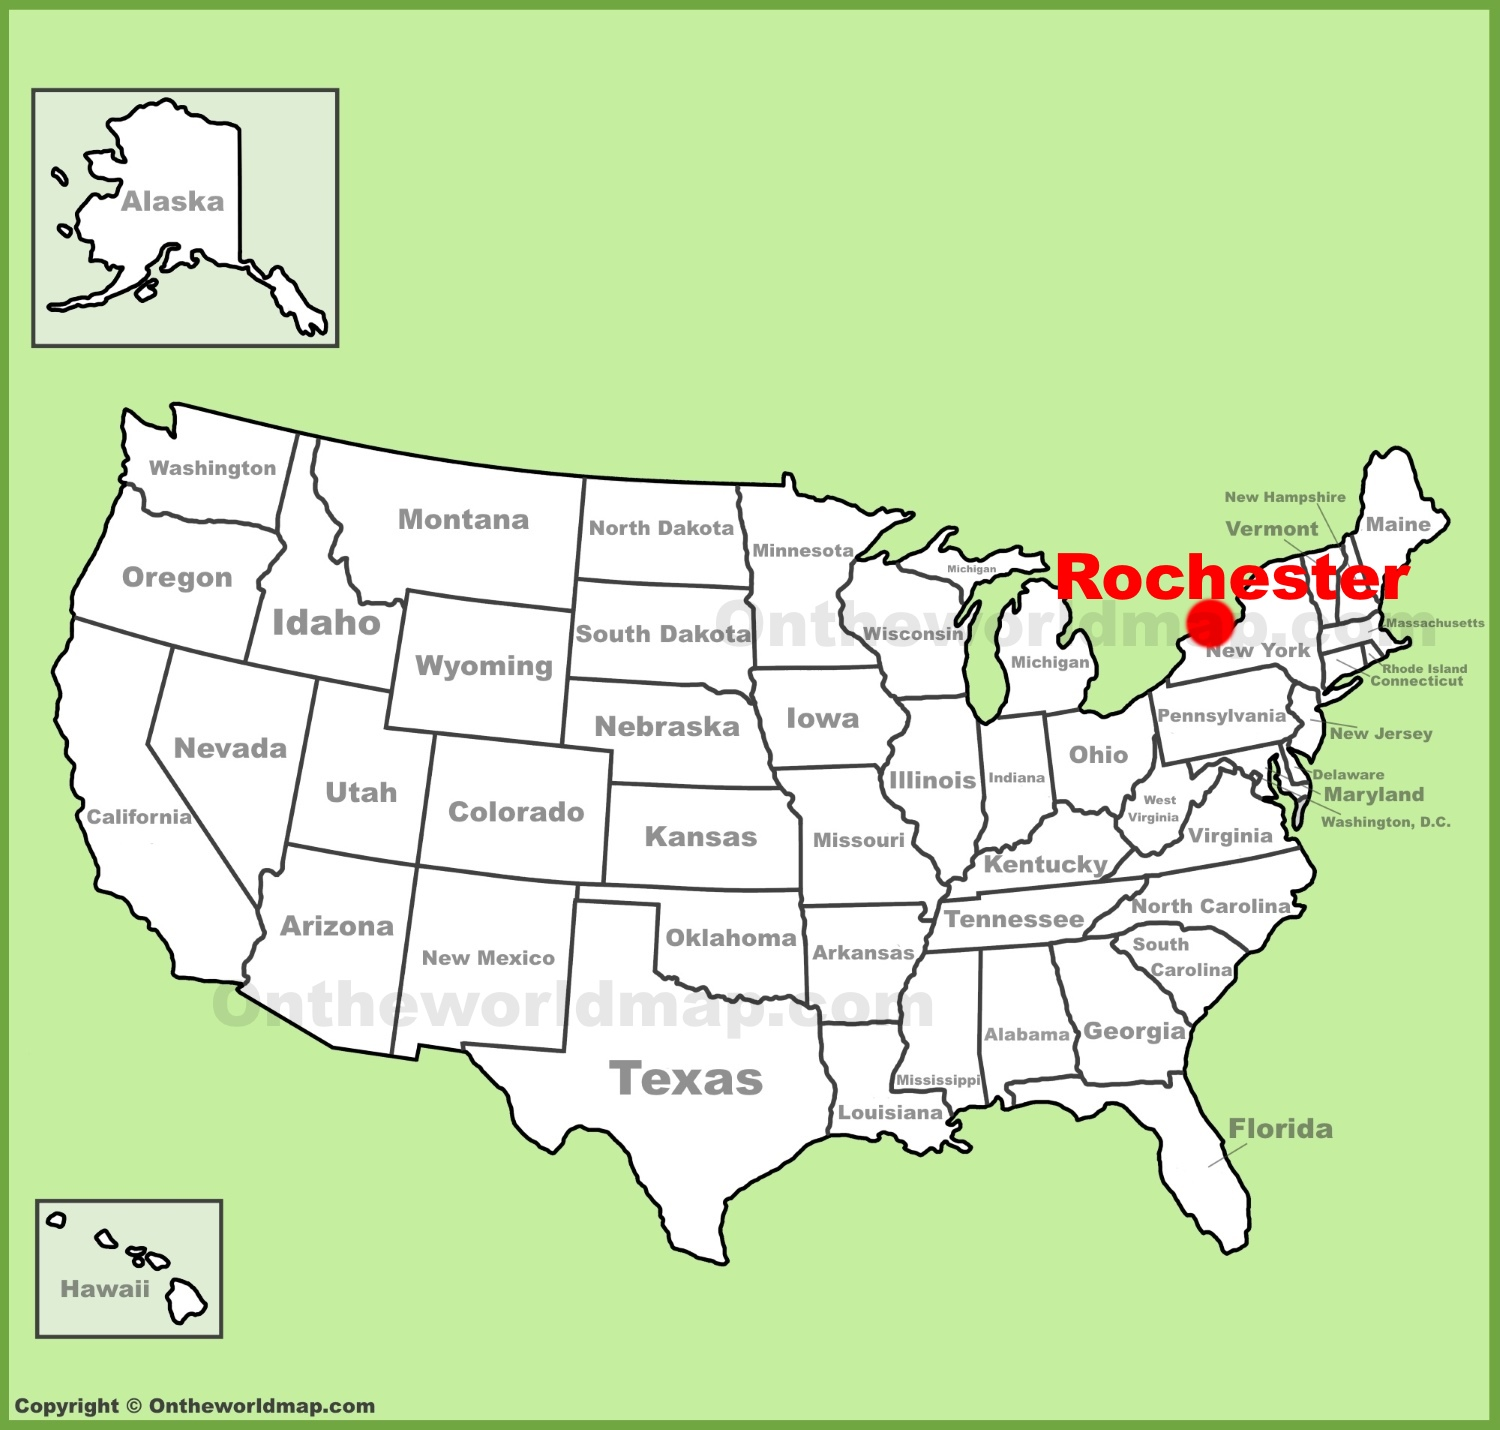 Rochester location on the U.S. Map